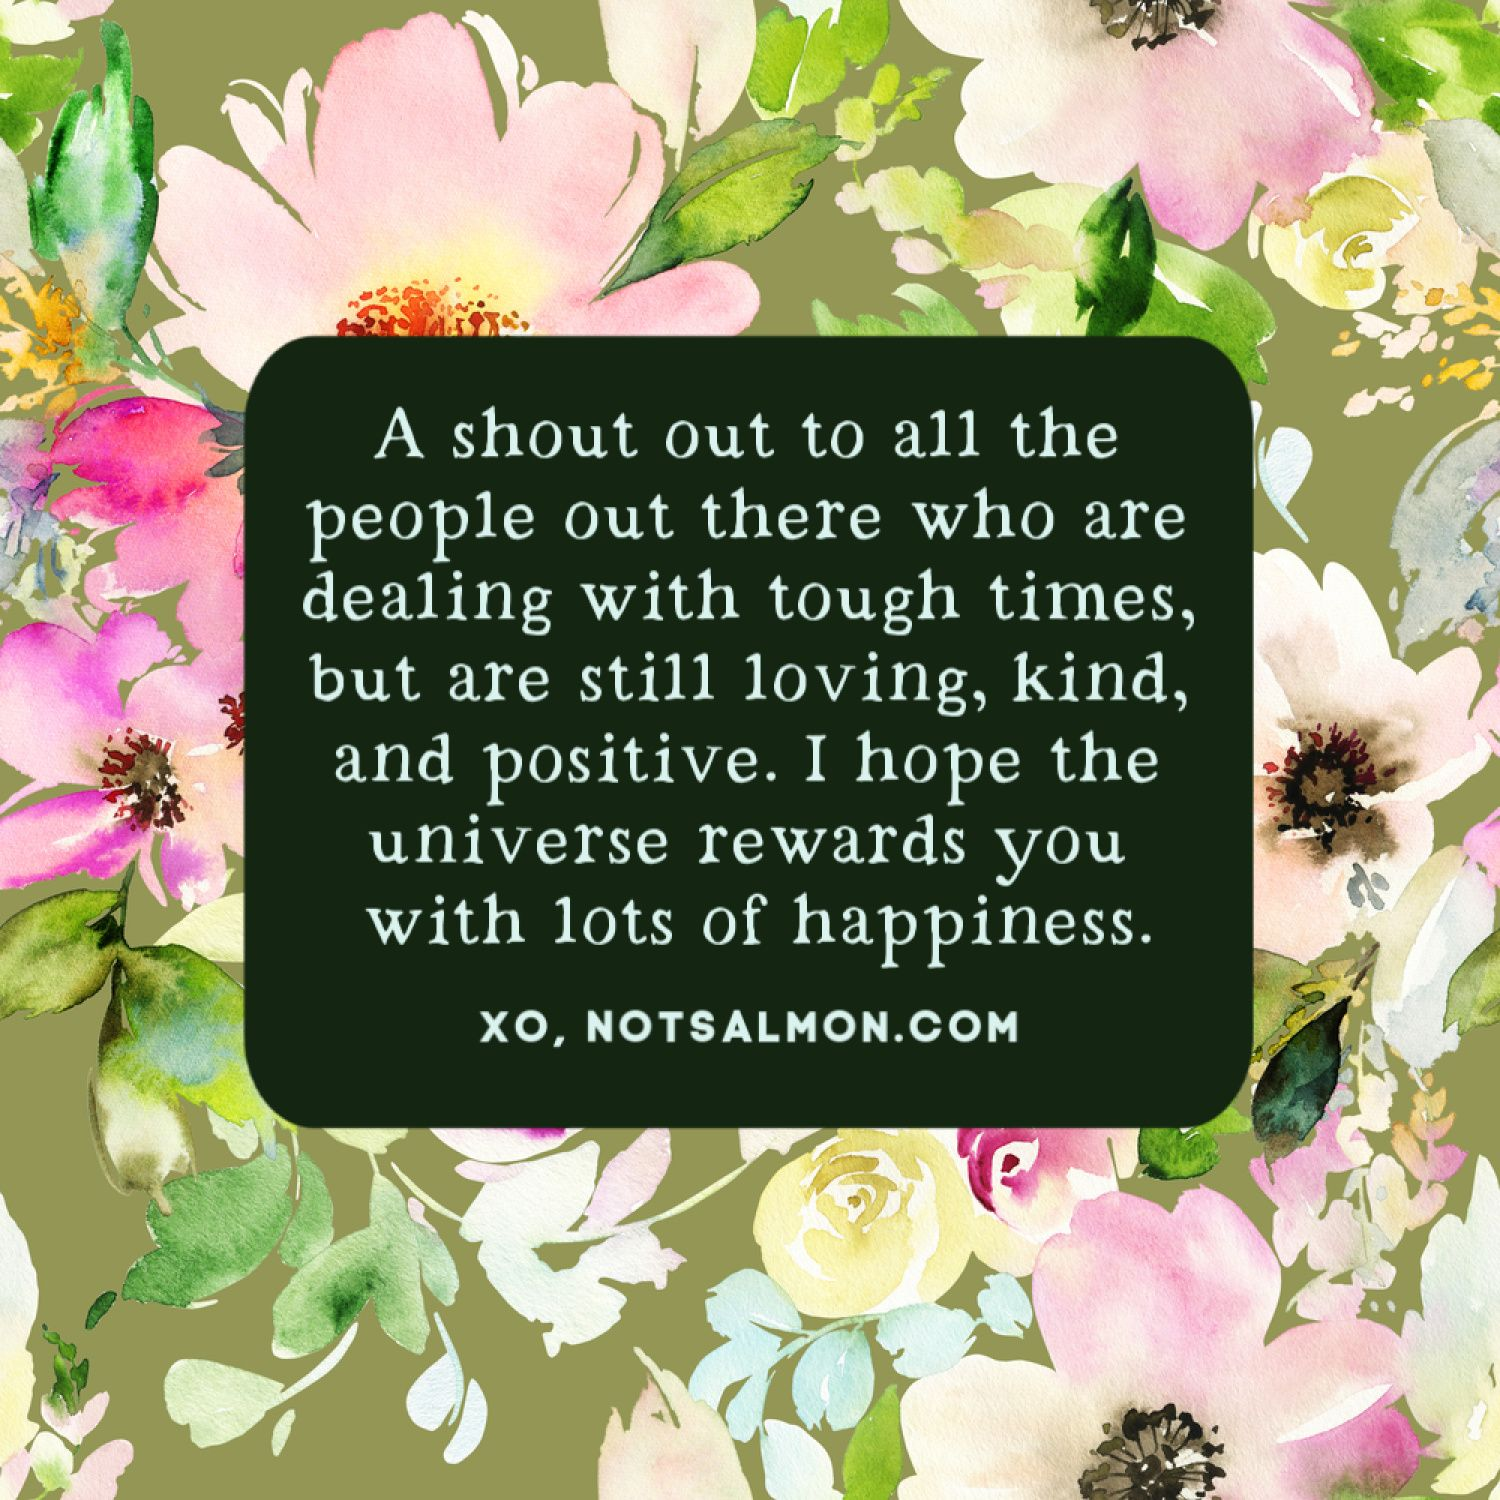 20 Kindness Quotes For Kids And Adults To Inspire A Better World Kindness Quotes Kindness Giving Quotes